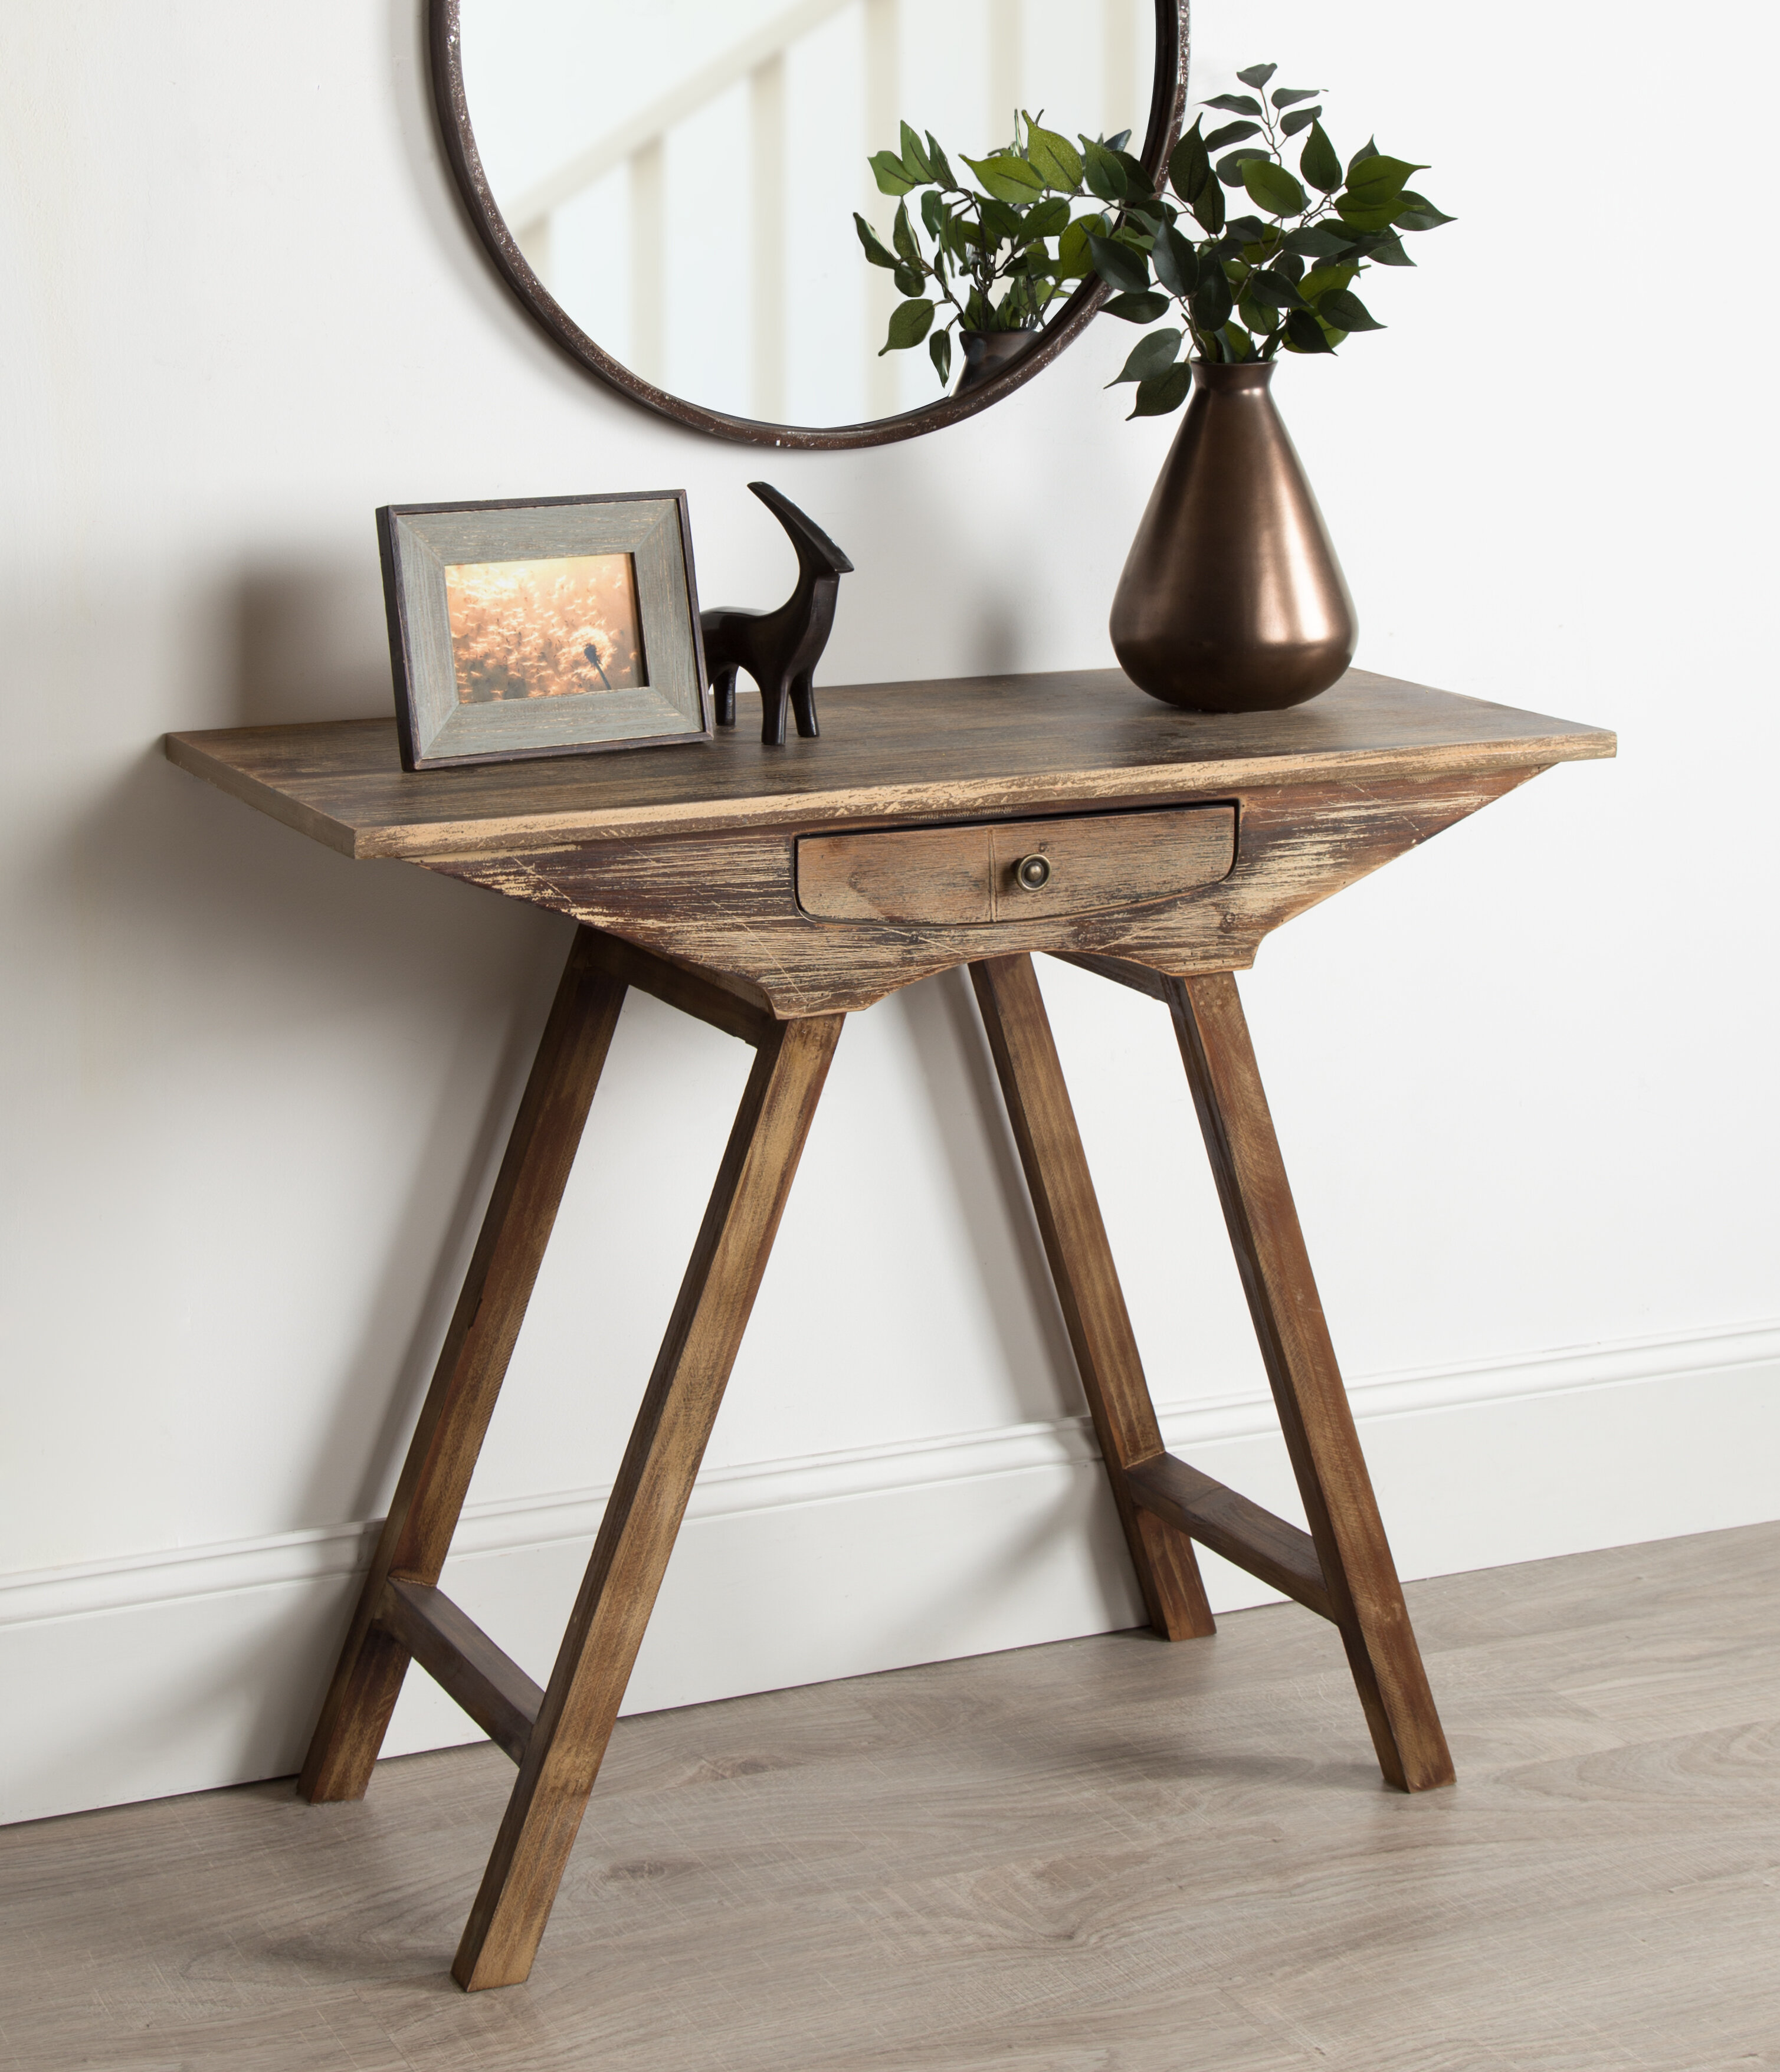 - Union Rustic Pringle Chic Small Wooden Console Table & Reviews